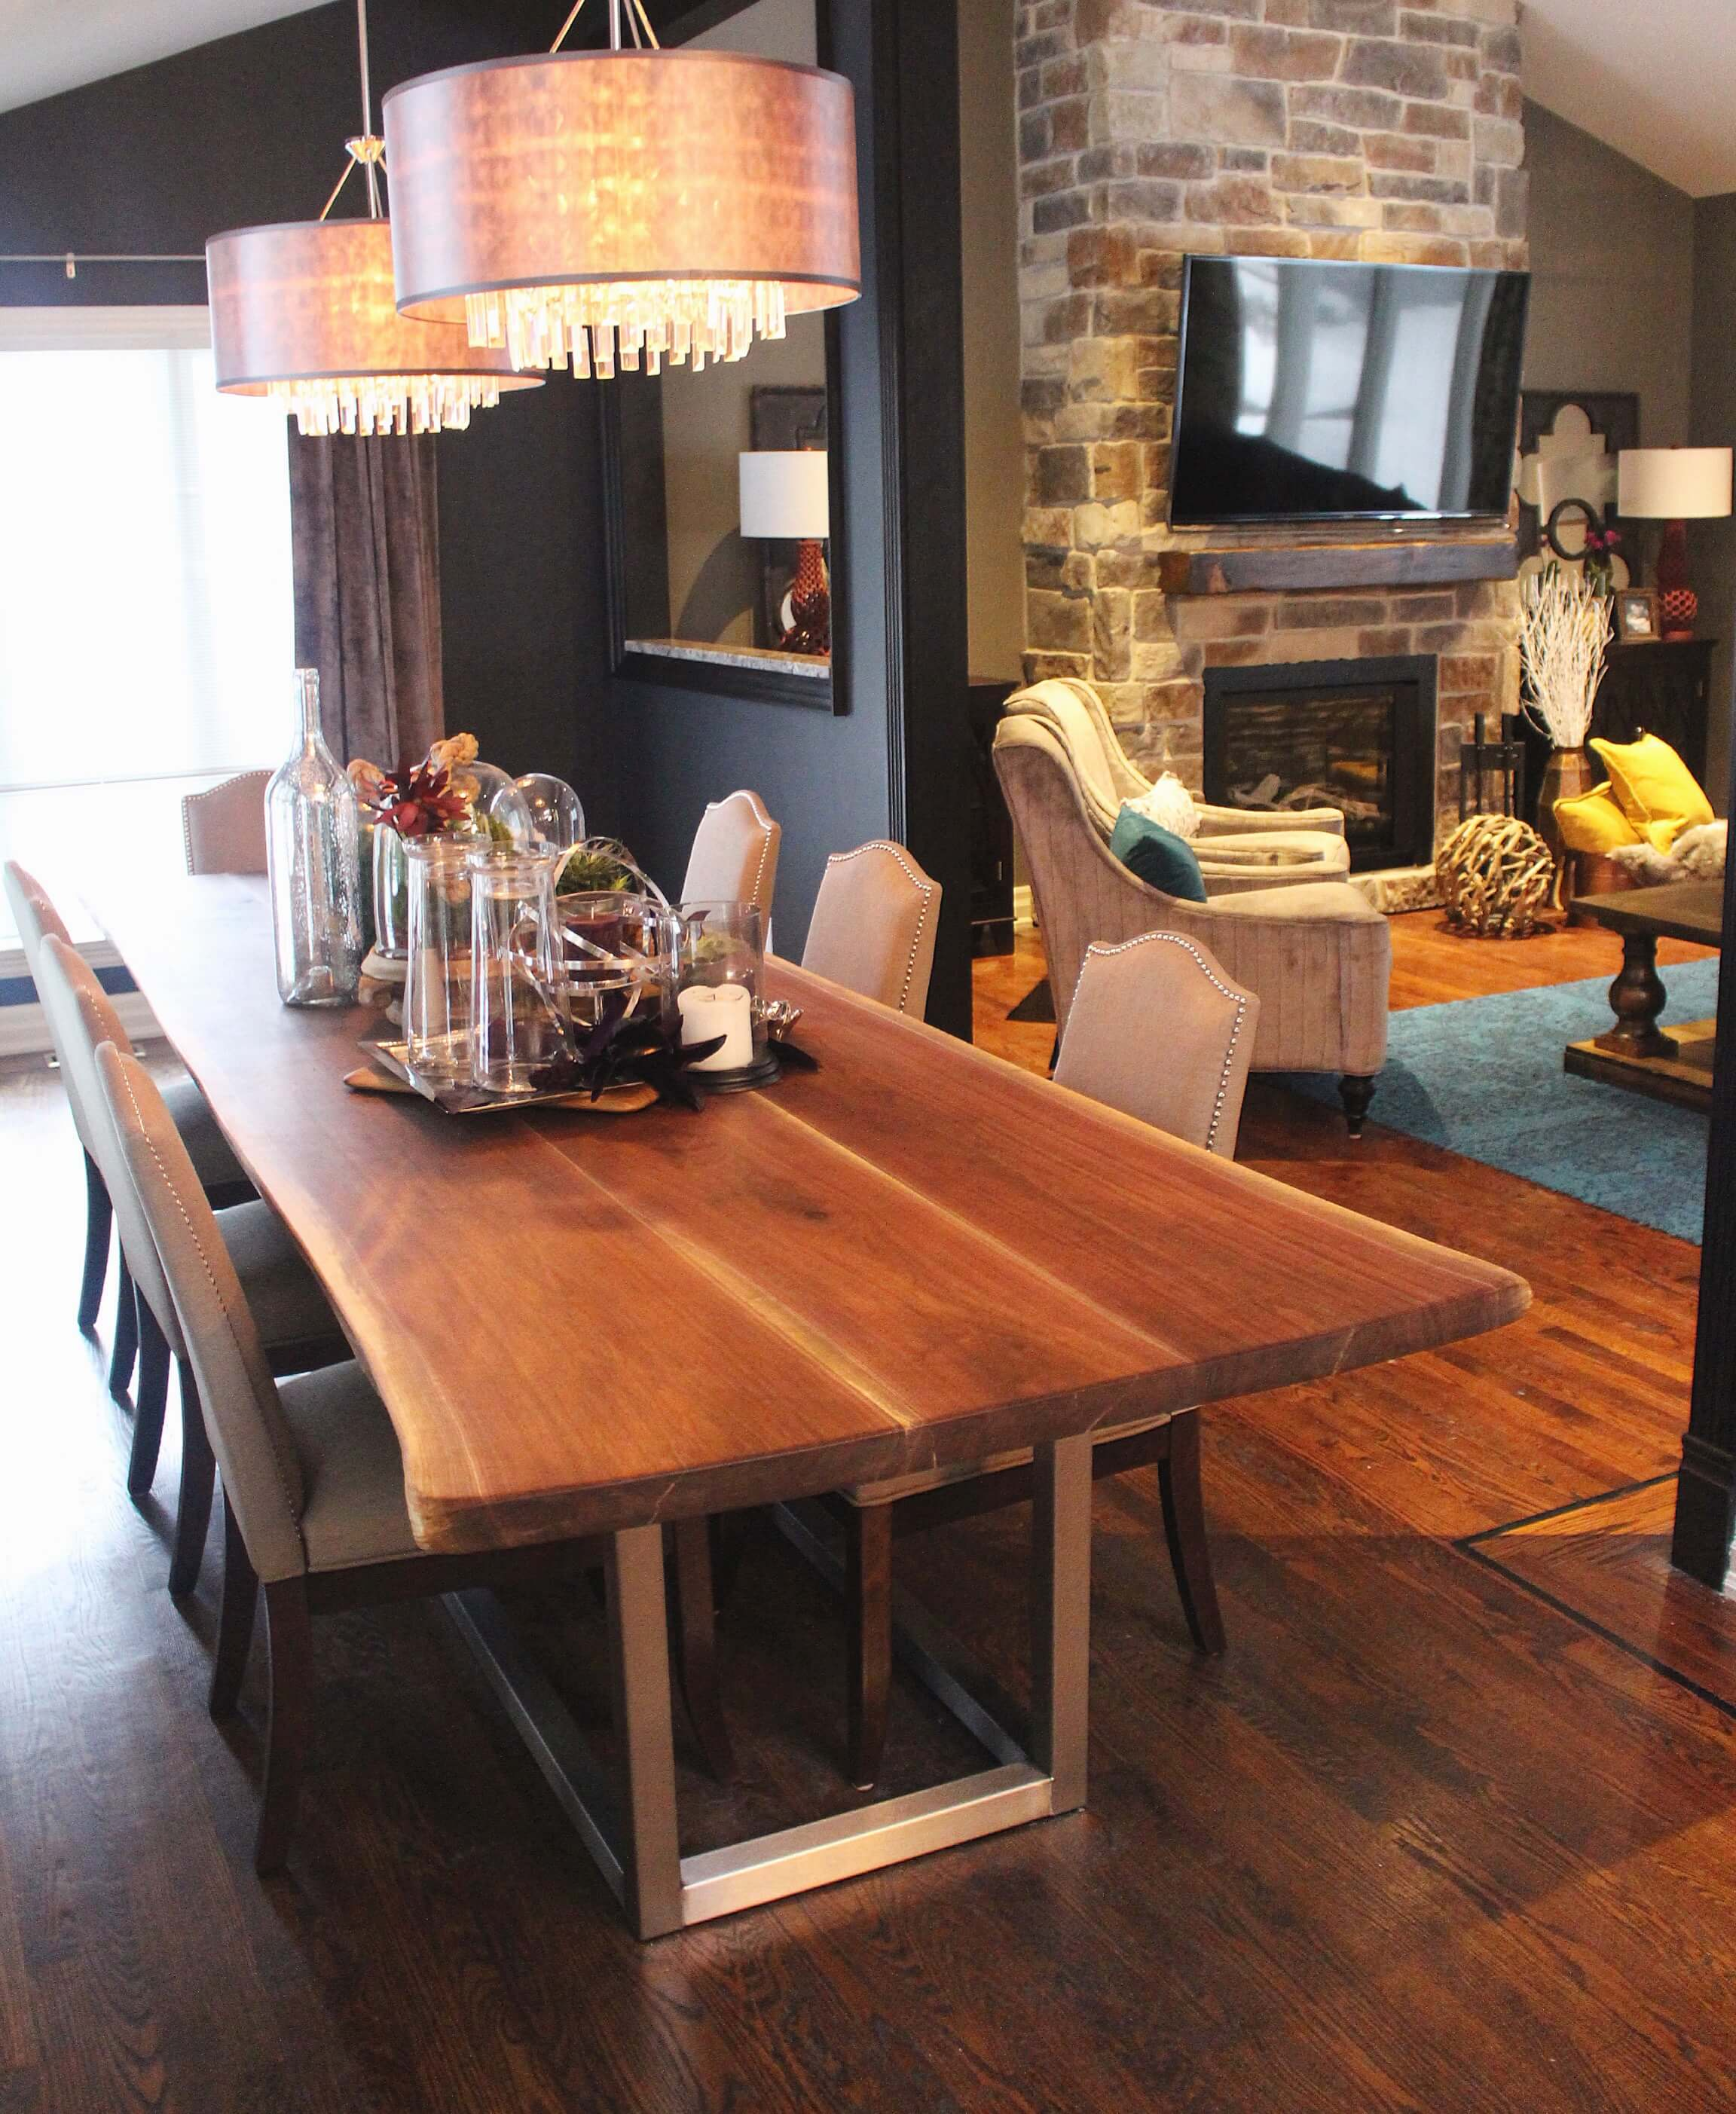 Live edge black walnut table on The Property Brothers